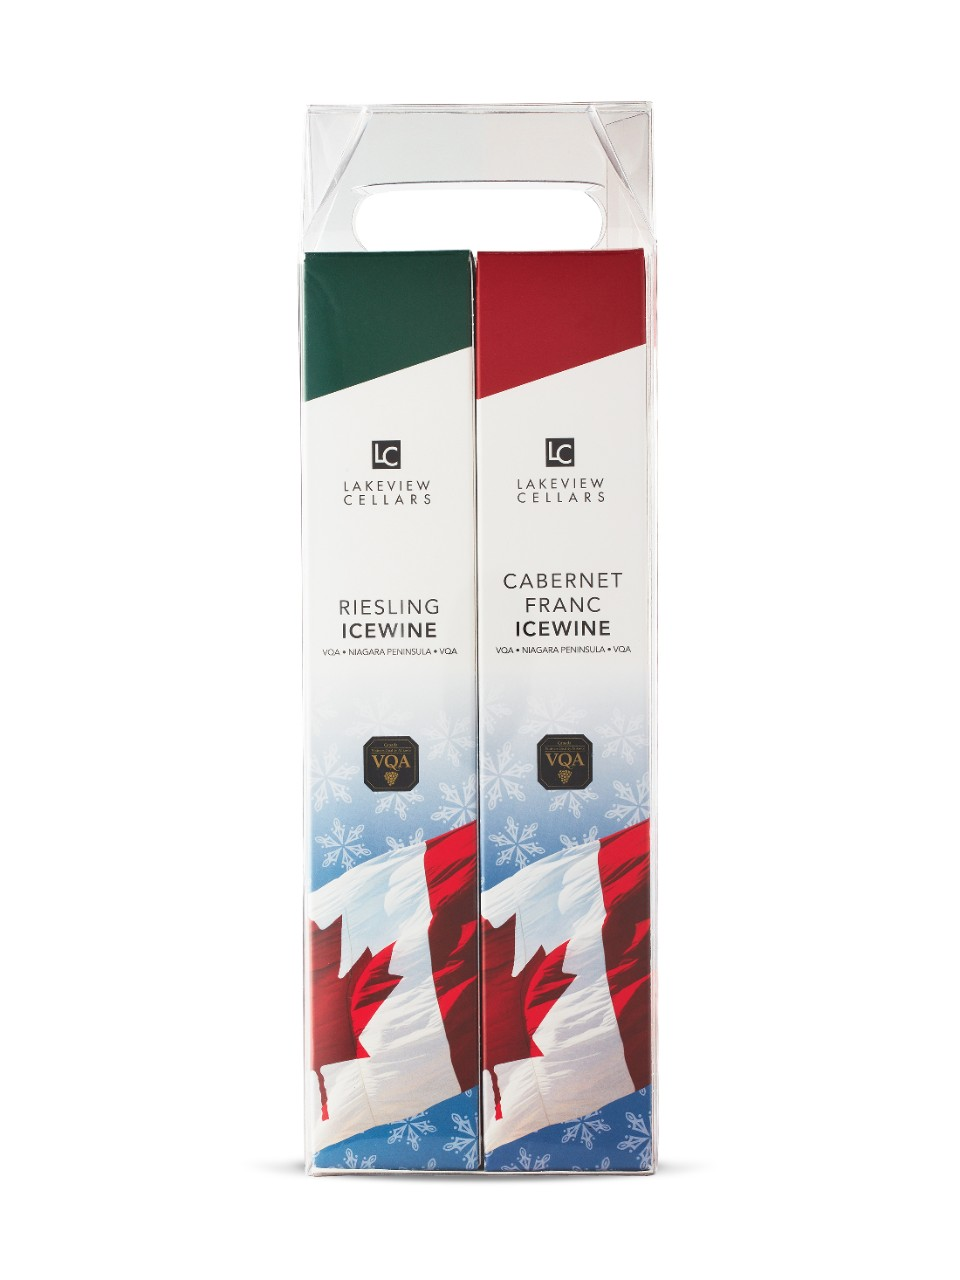 Image for Lakeview Cellars Riesling Icewine 2016 & Cabernet Franc Icewine 2013 from LCBO